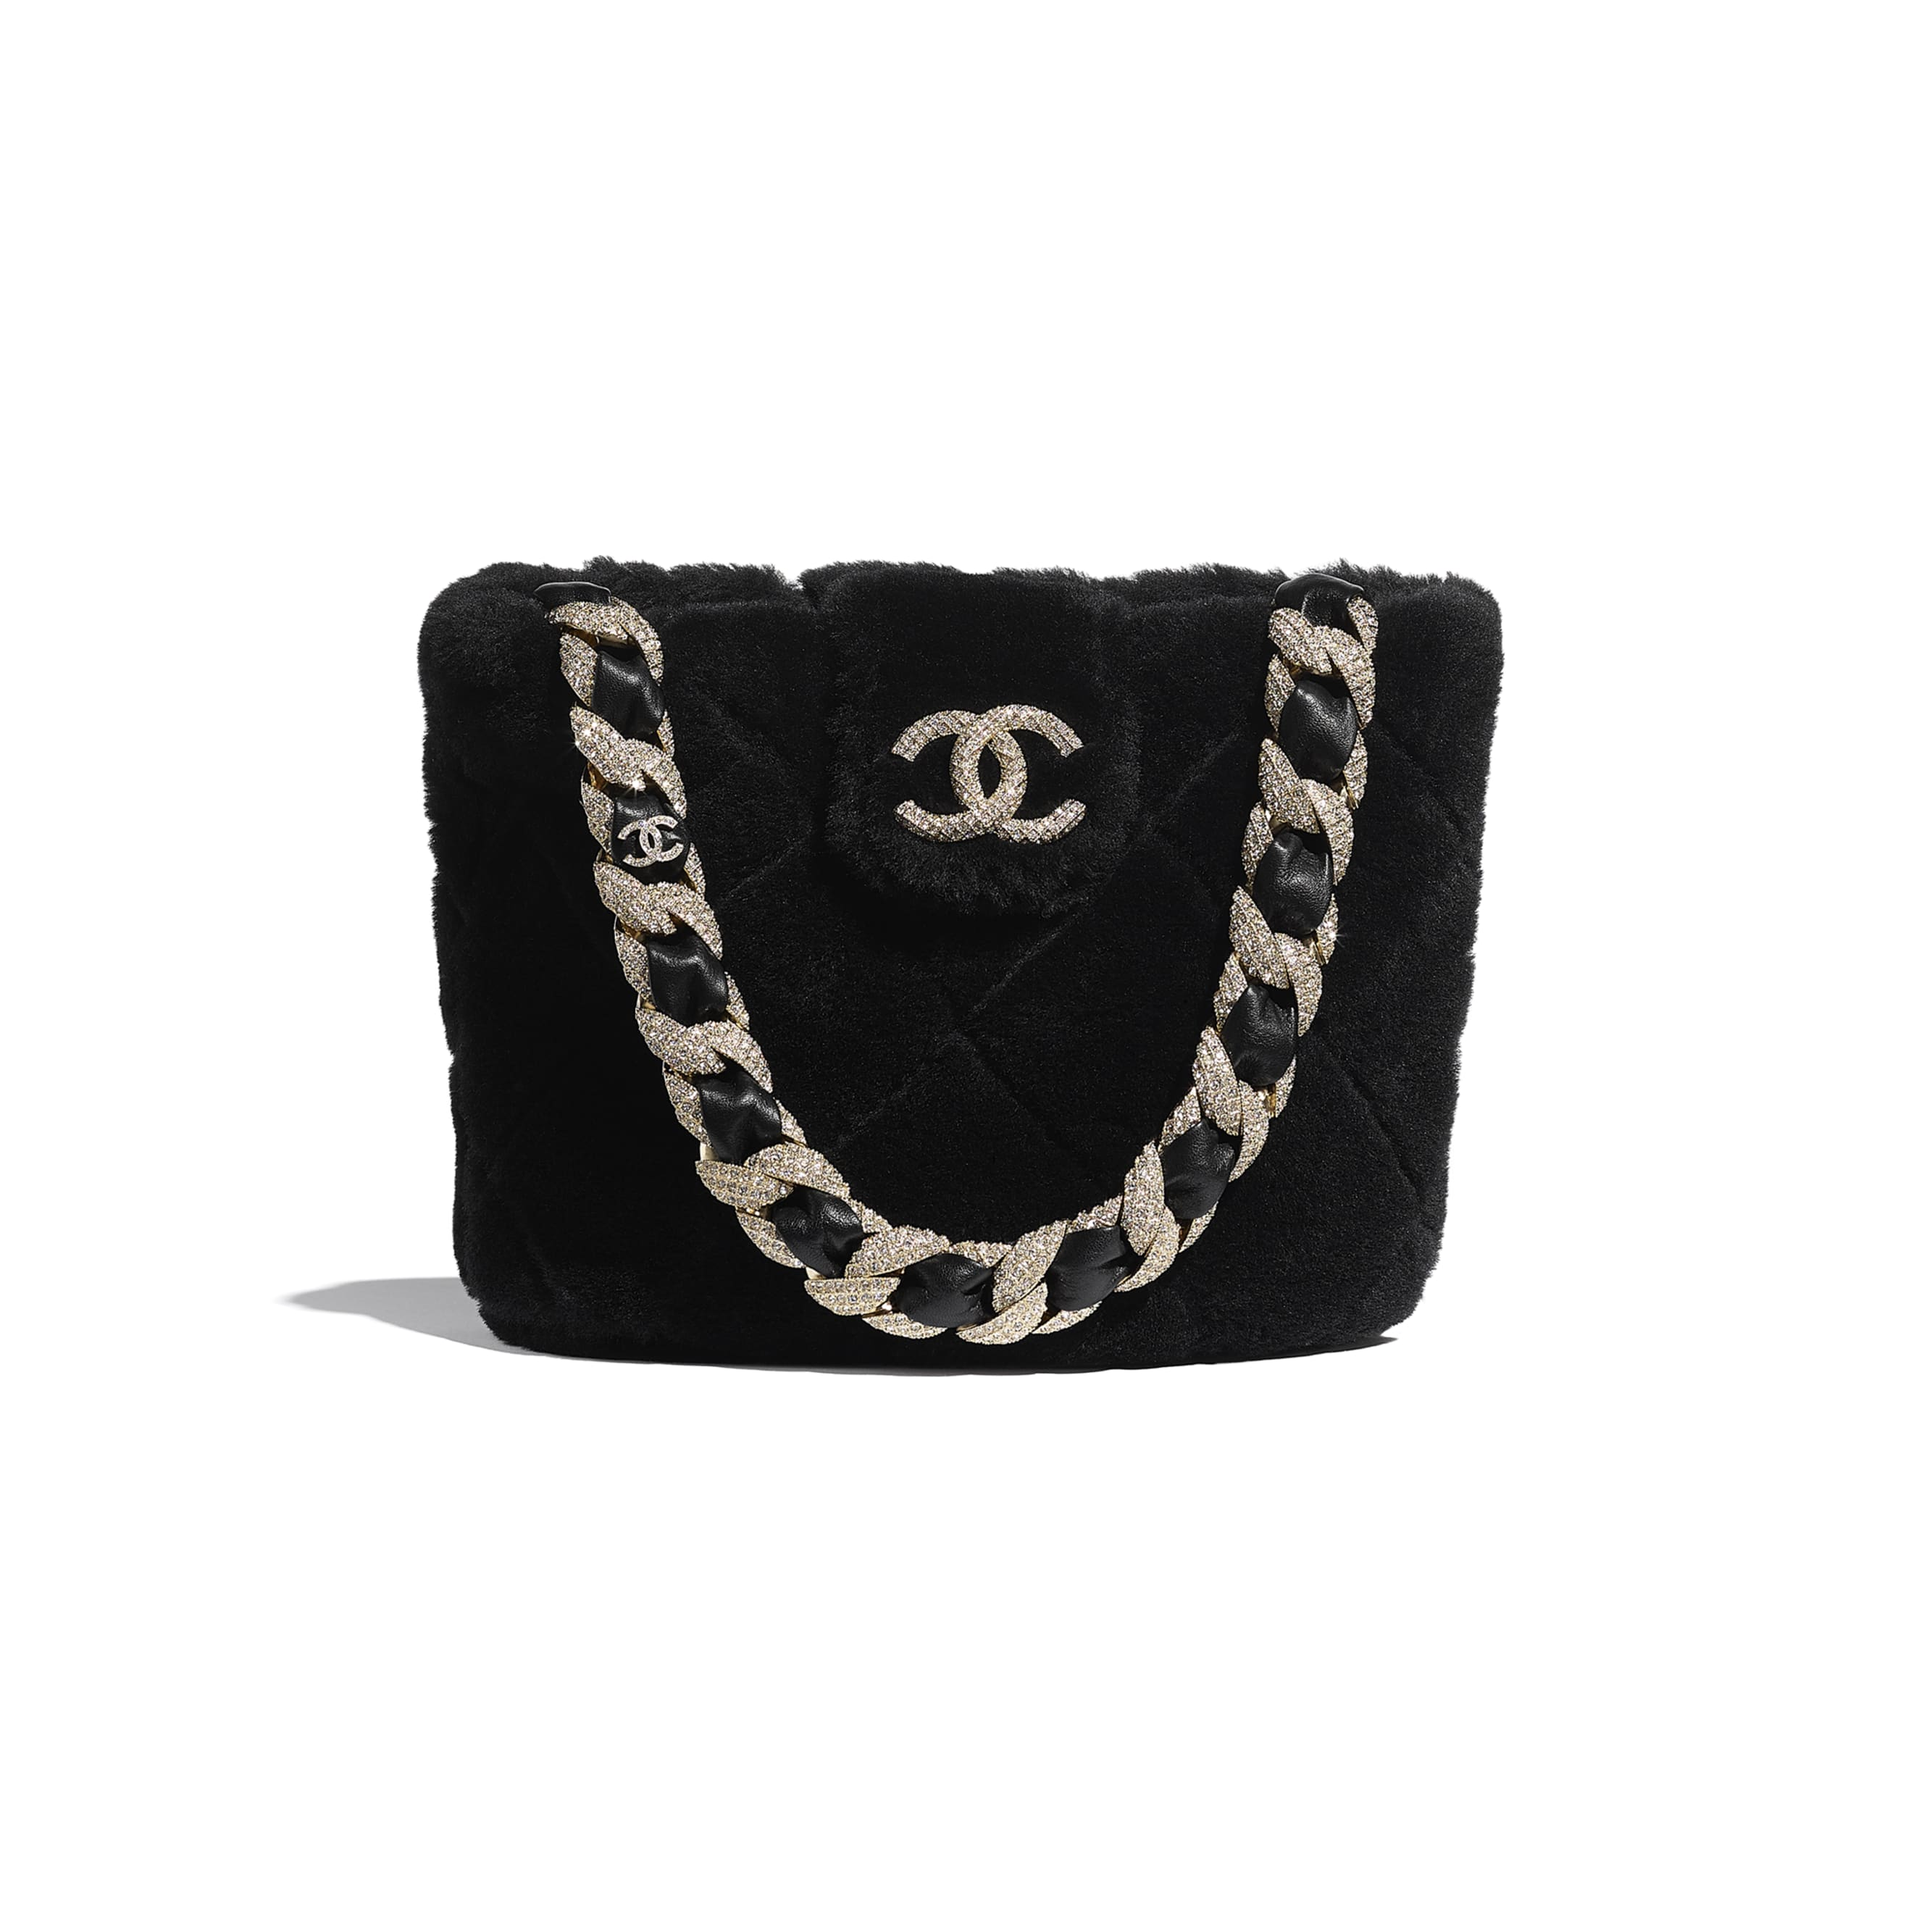 Bucket Bag - Black - Shearling Lambskin, Strass & Gold-Tone Metal - CHANEL - Default view - see standard sized version